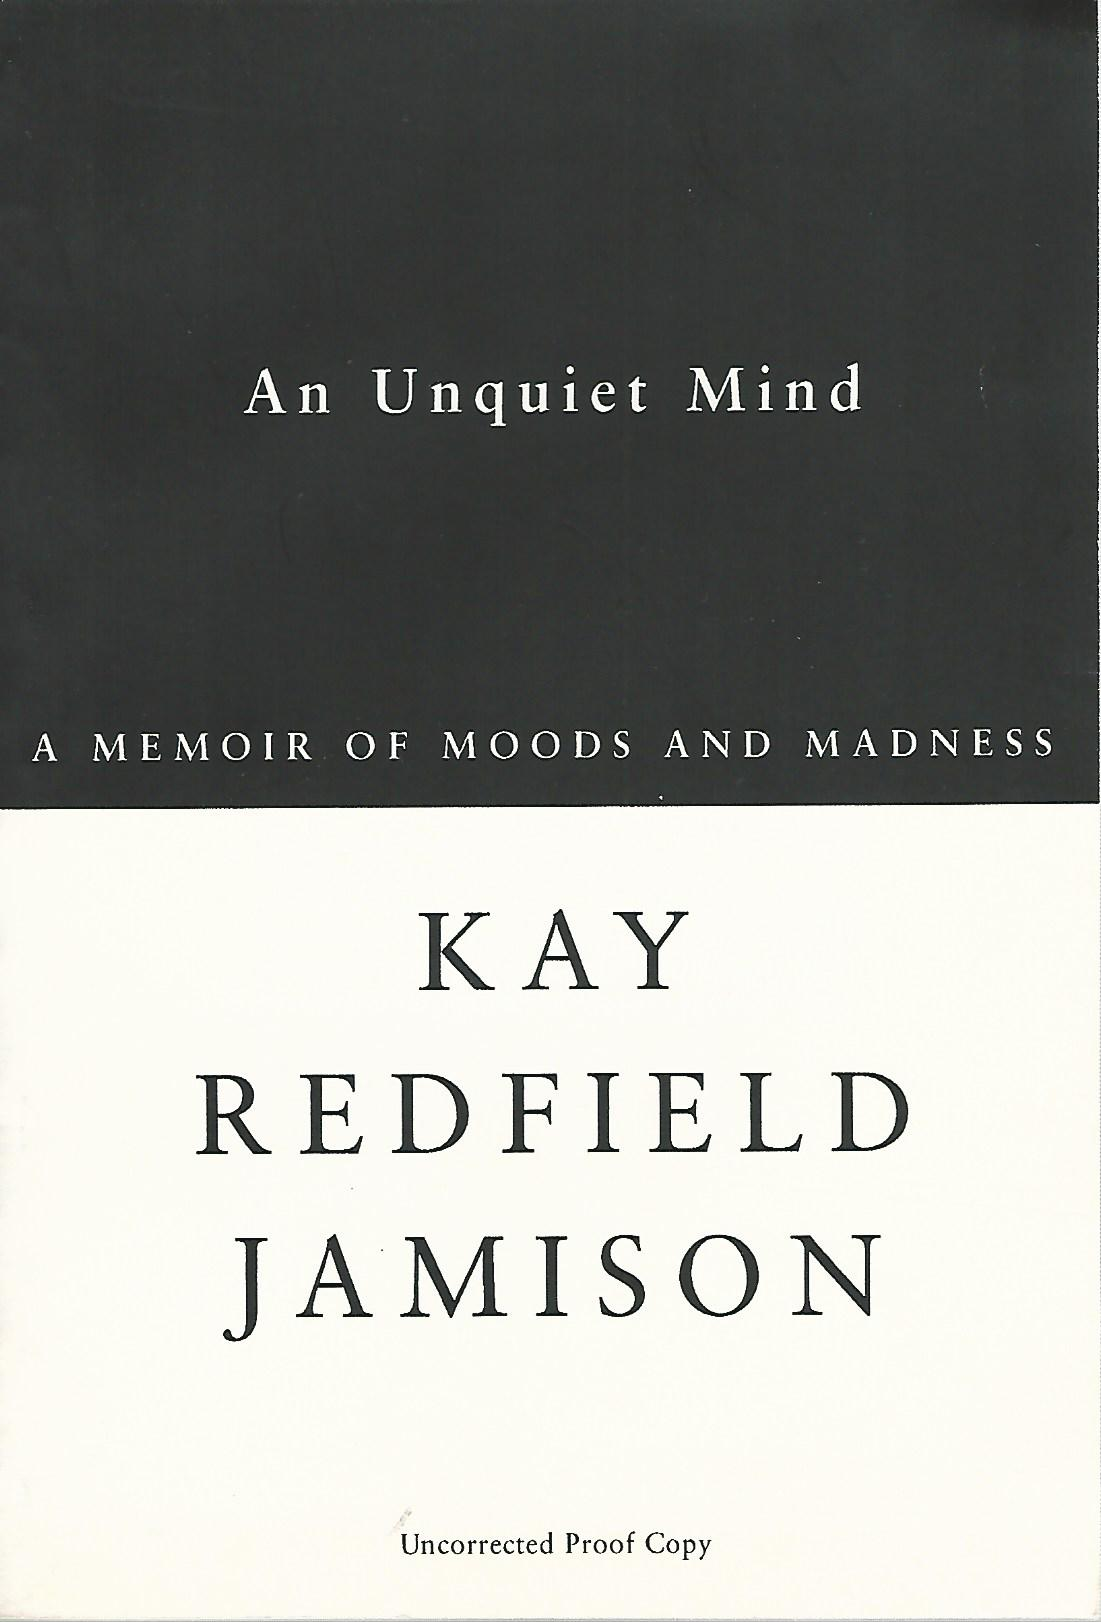 Image for An Unquiet Mind, a Memoir of Moods and Madness